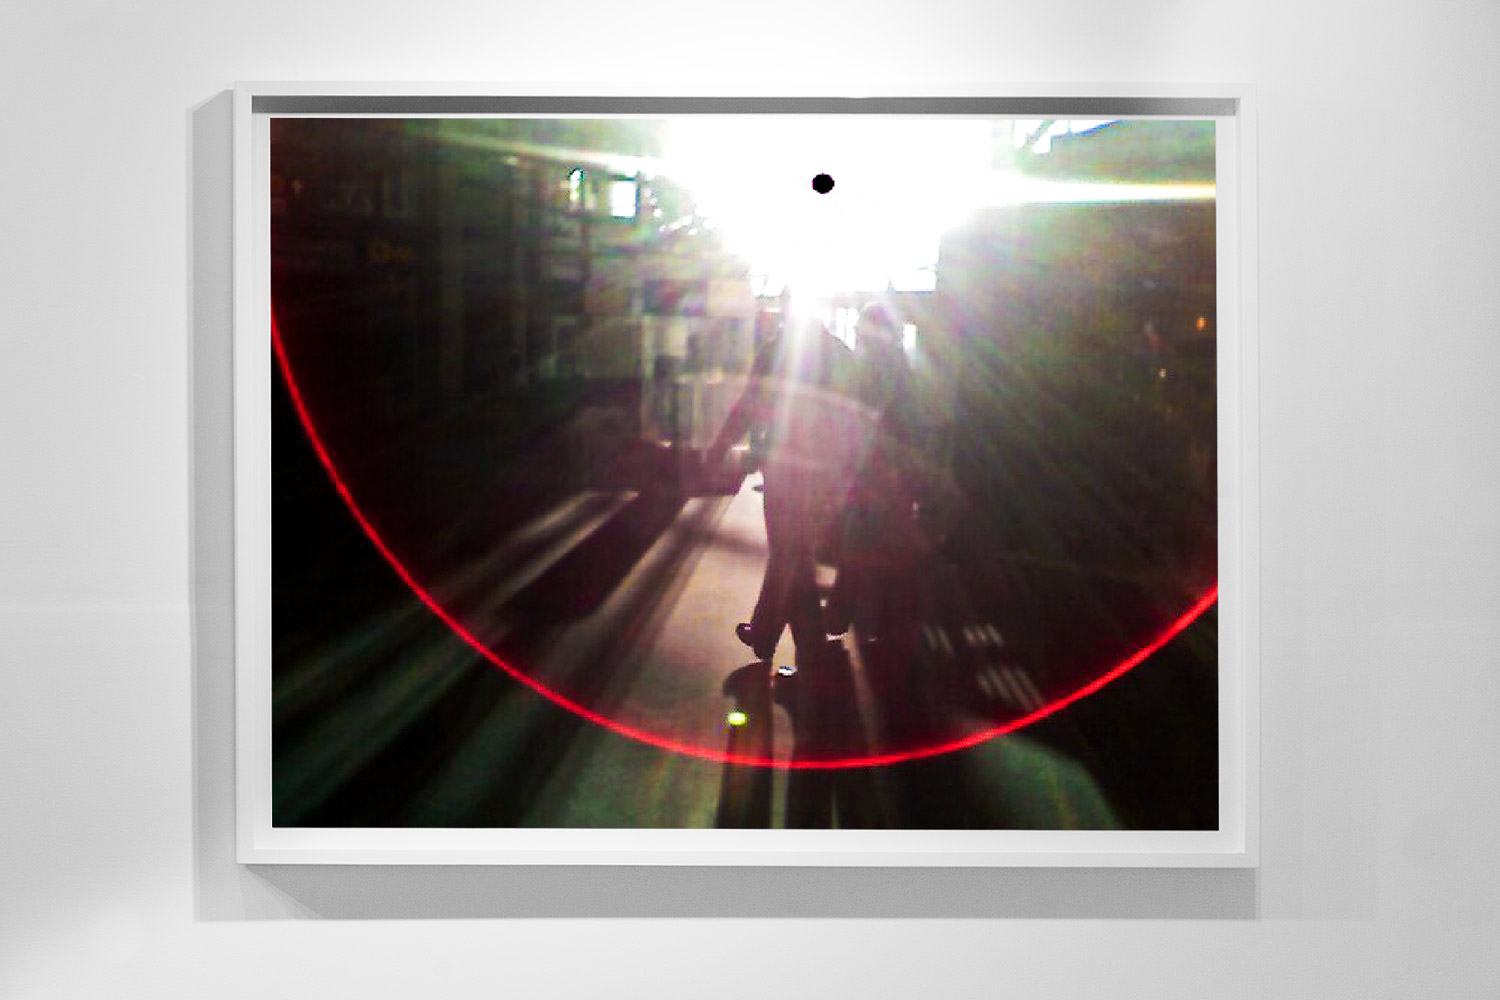 'Black Sun 0009,'48 x 64 inch,c-prints on diasec in wood frame, Black Sun Project, at Bas Fisher Invitational, 2008.